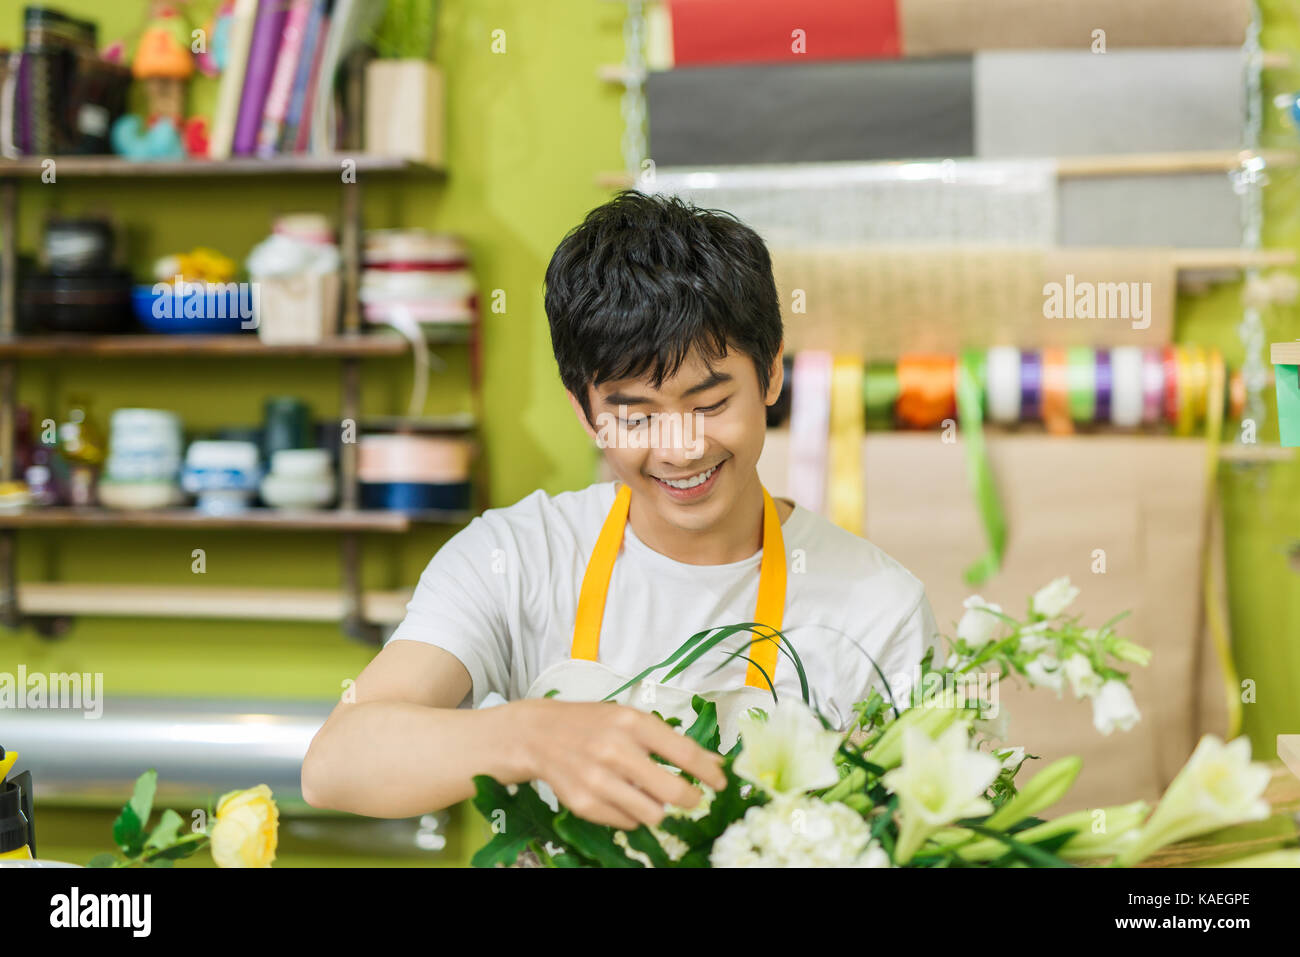 Portrait of smiling flower shop owner working. Small business. Stock Photo